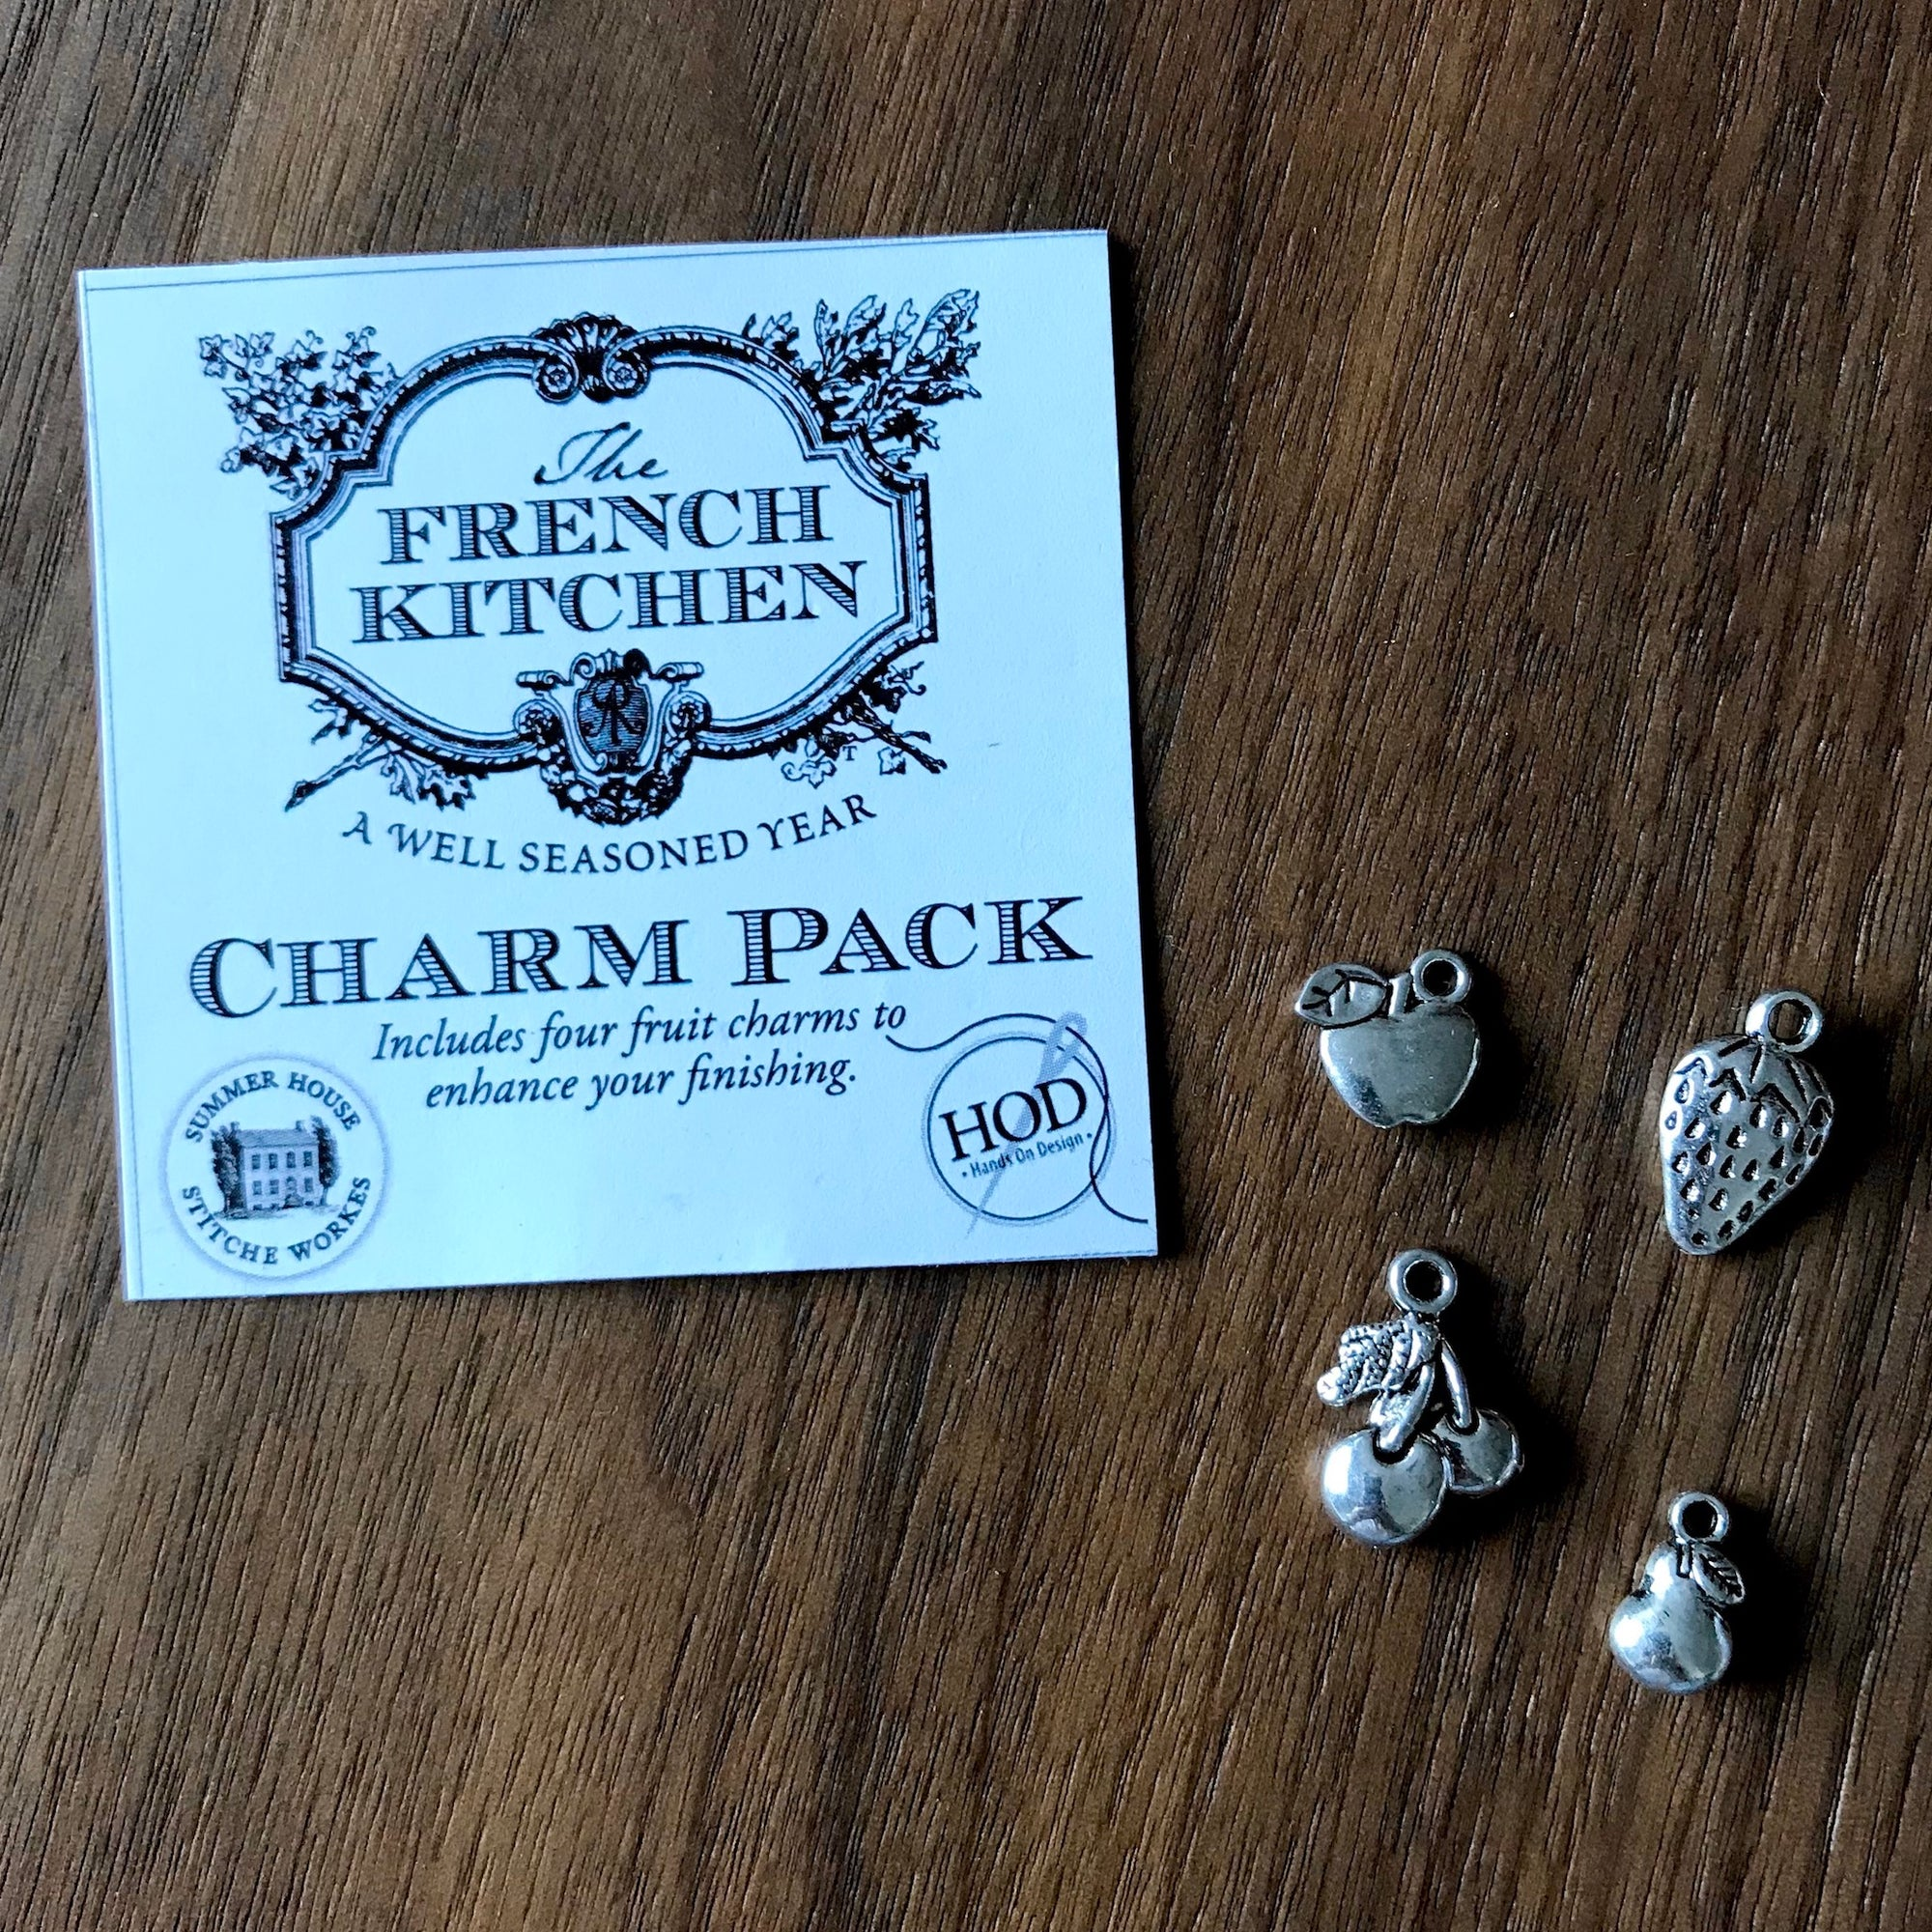 The French Kitchen Charm Pack